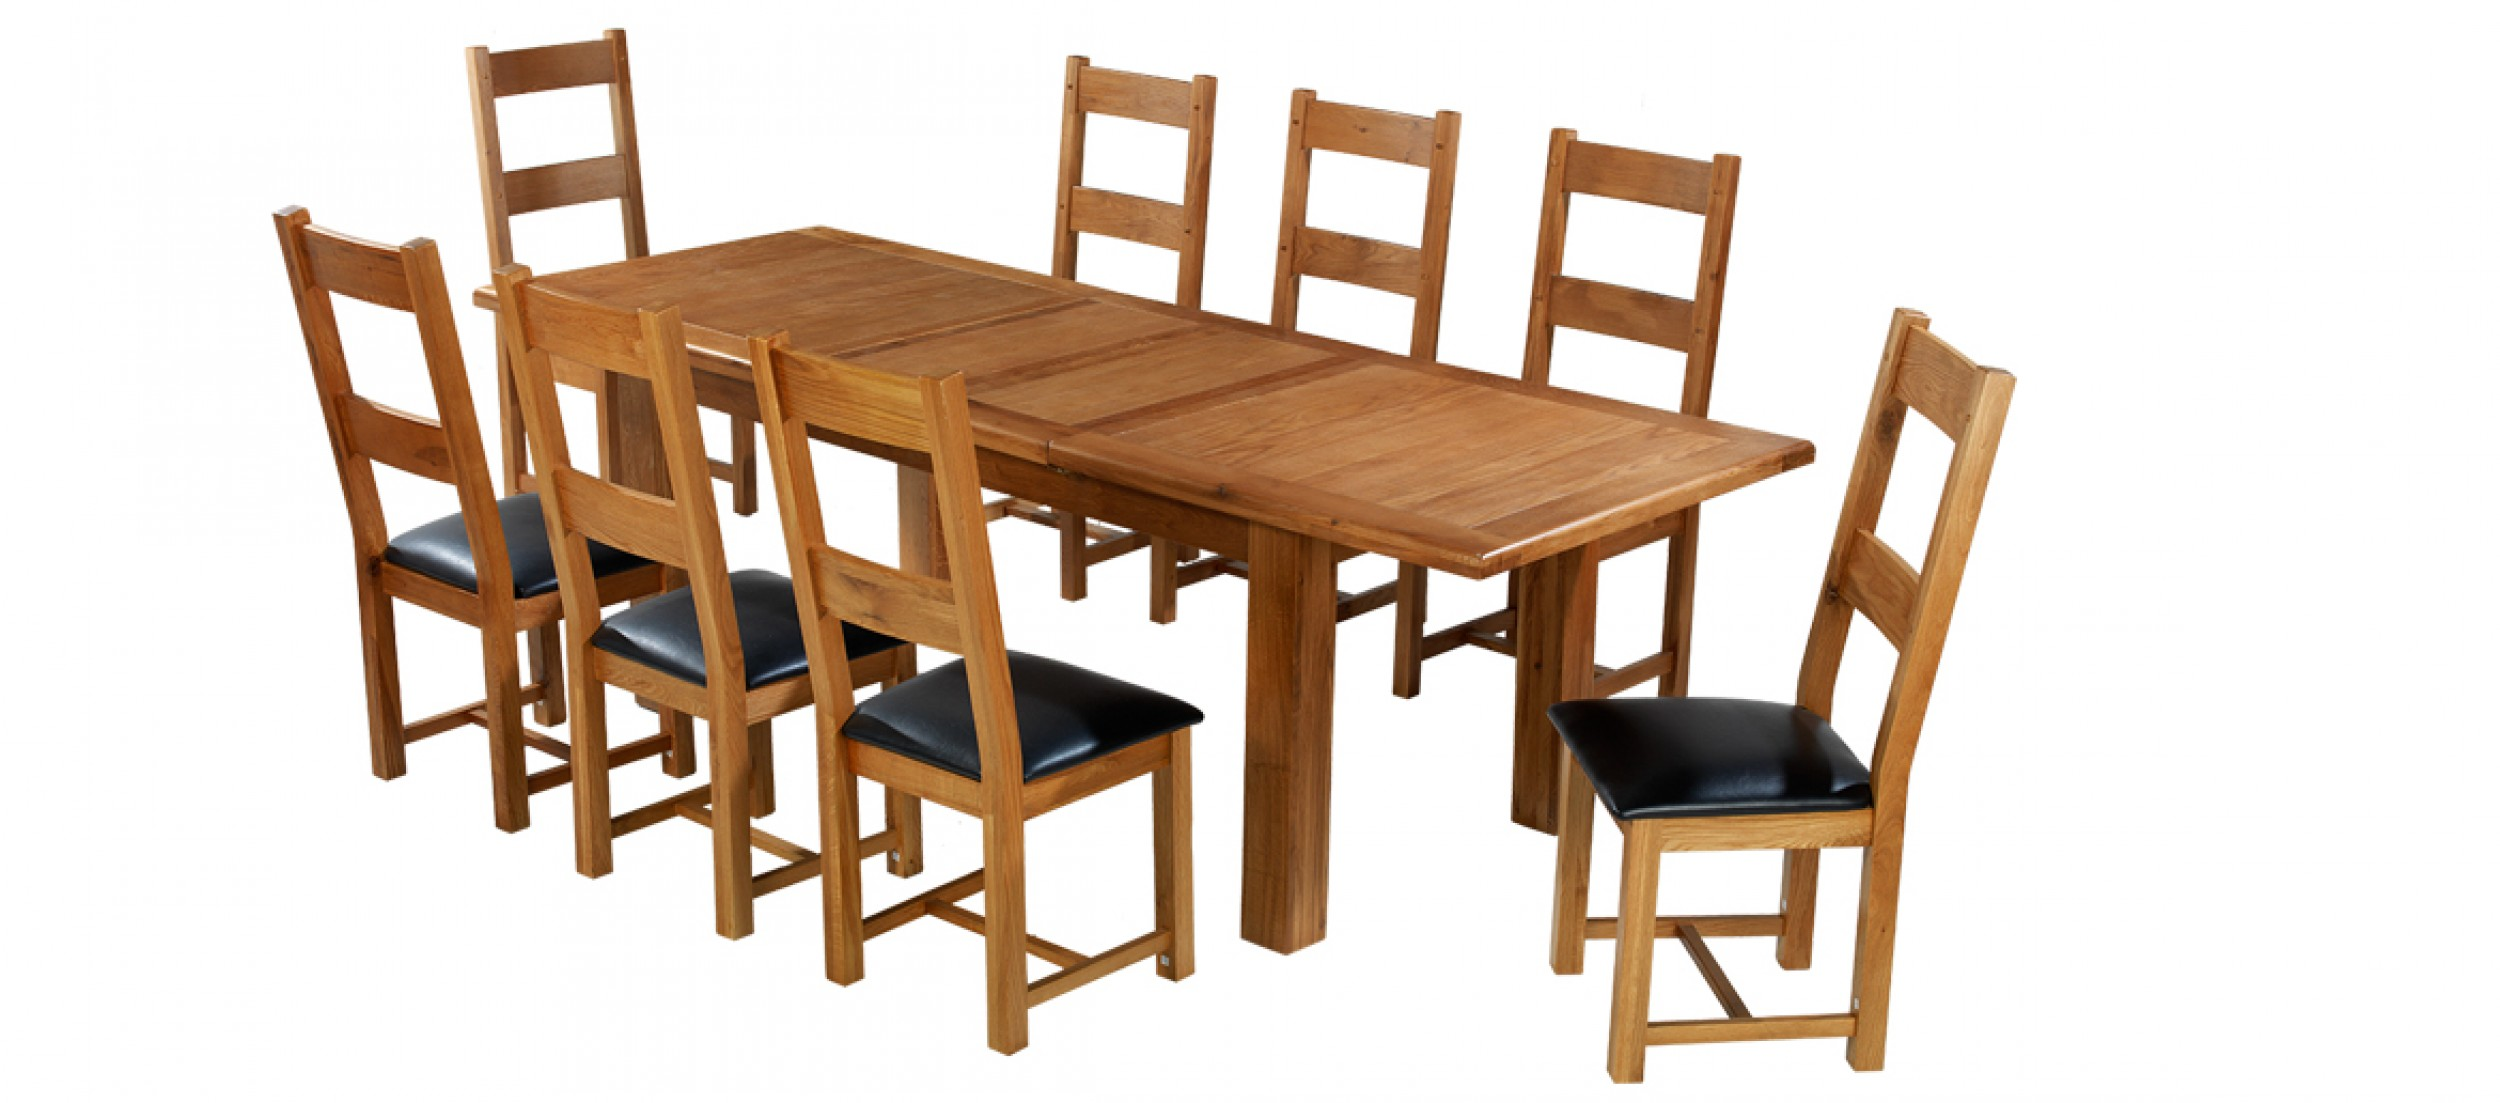 large round oak dining table 8 chairs the bike chair barham 180 250 cm extending and